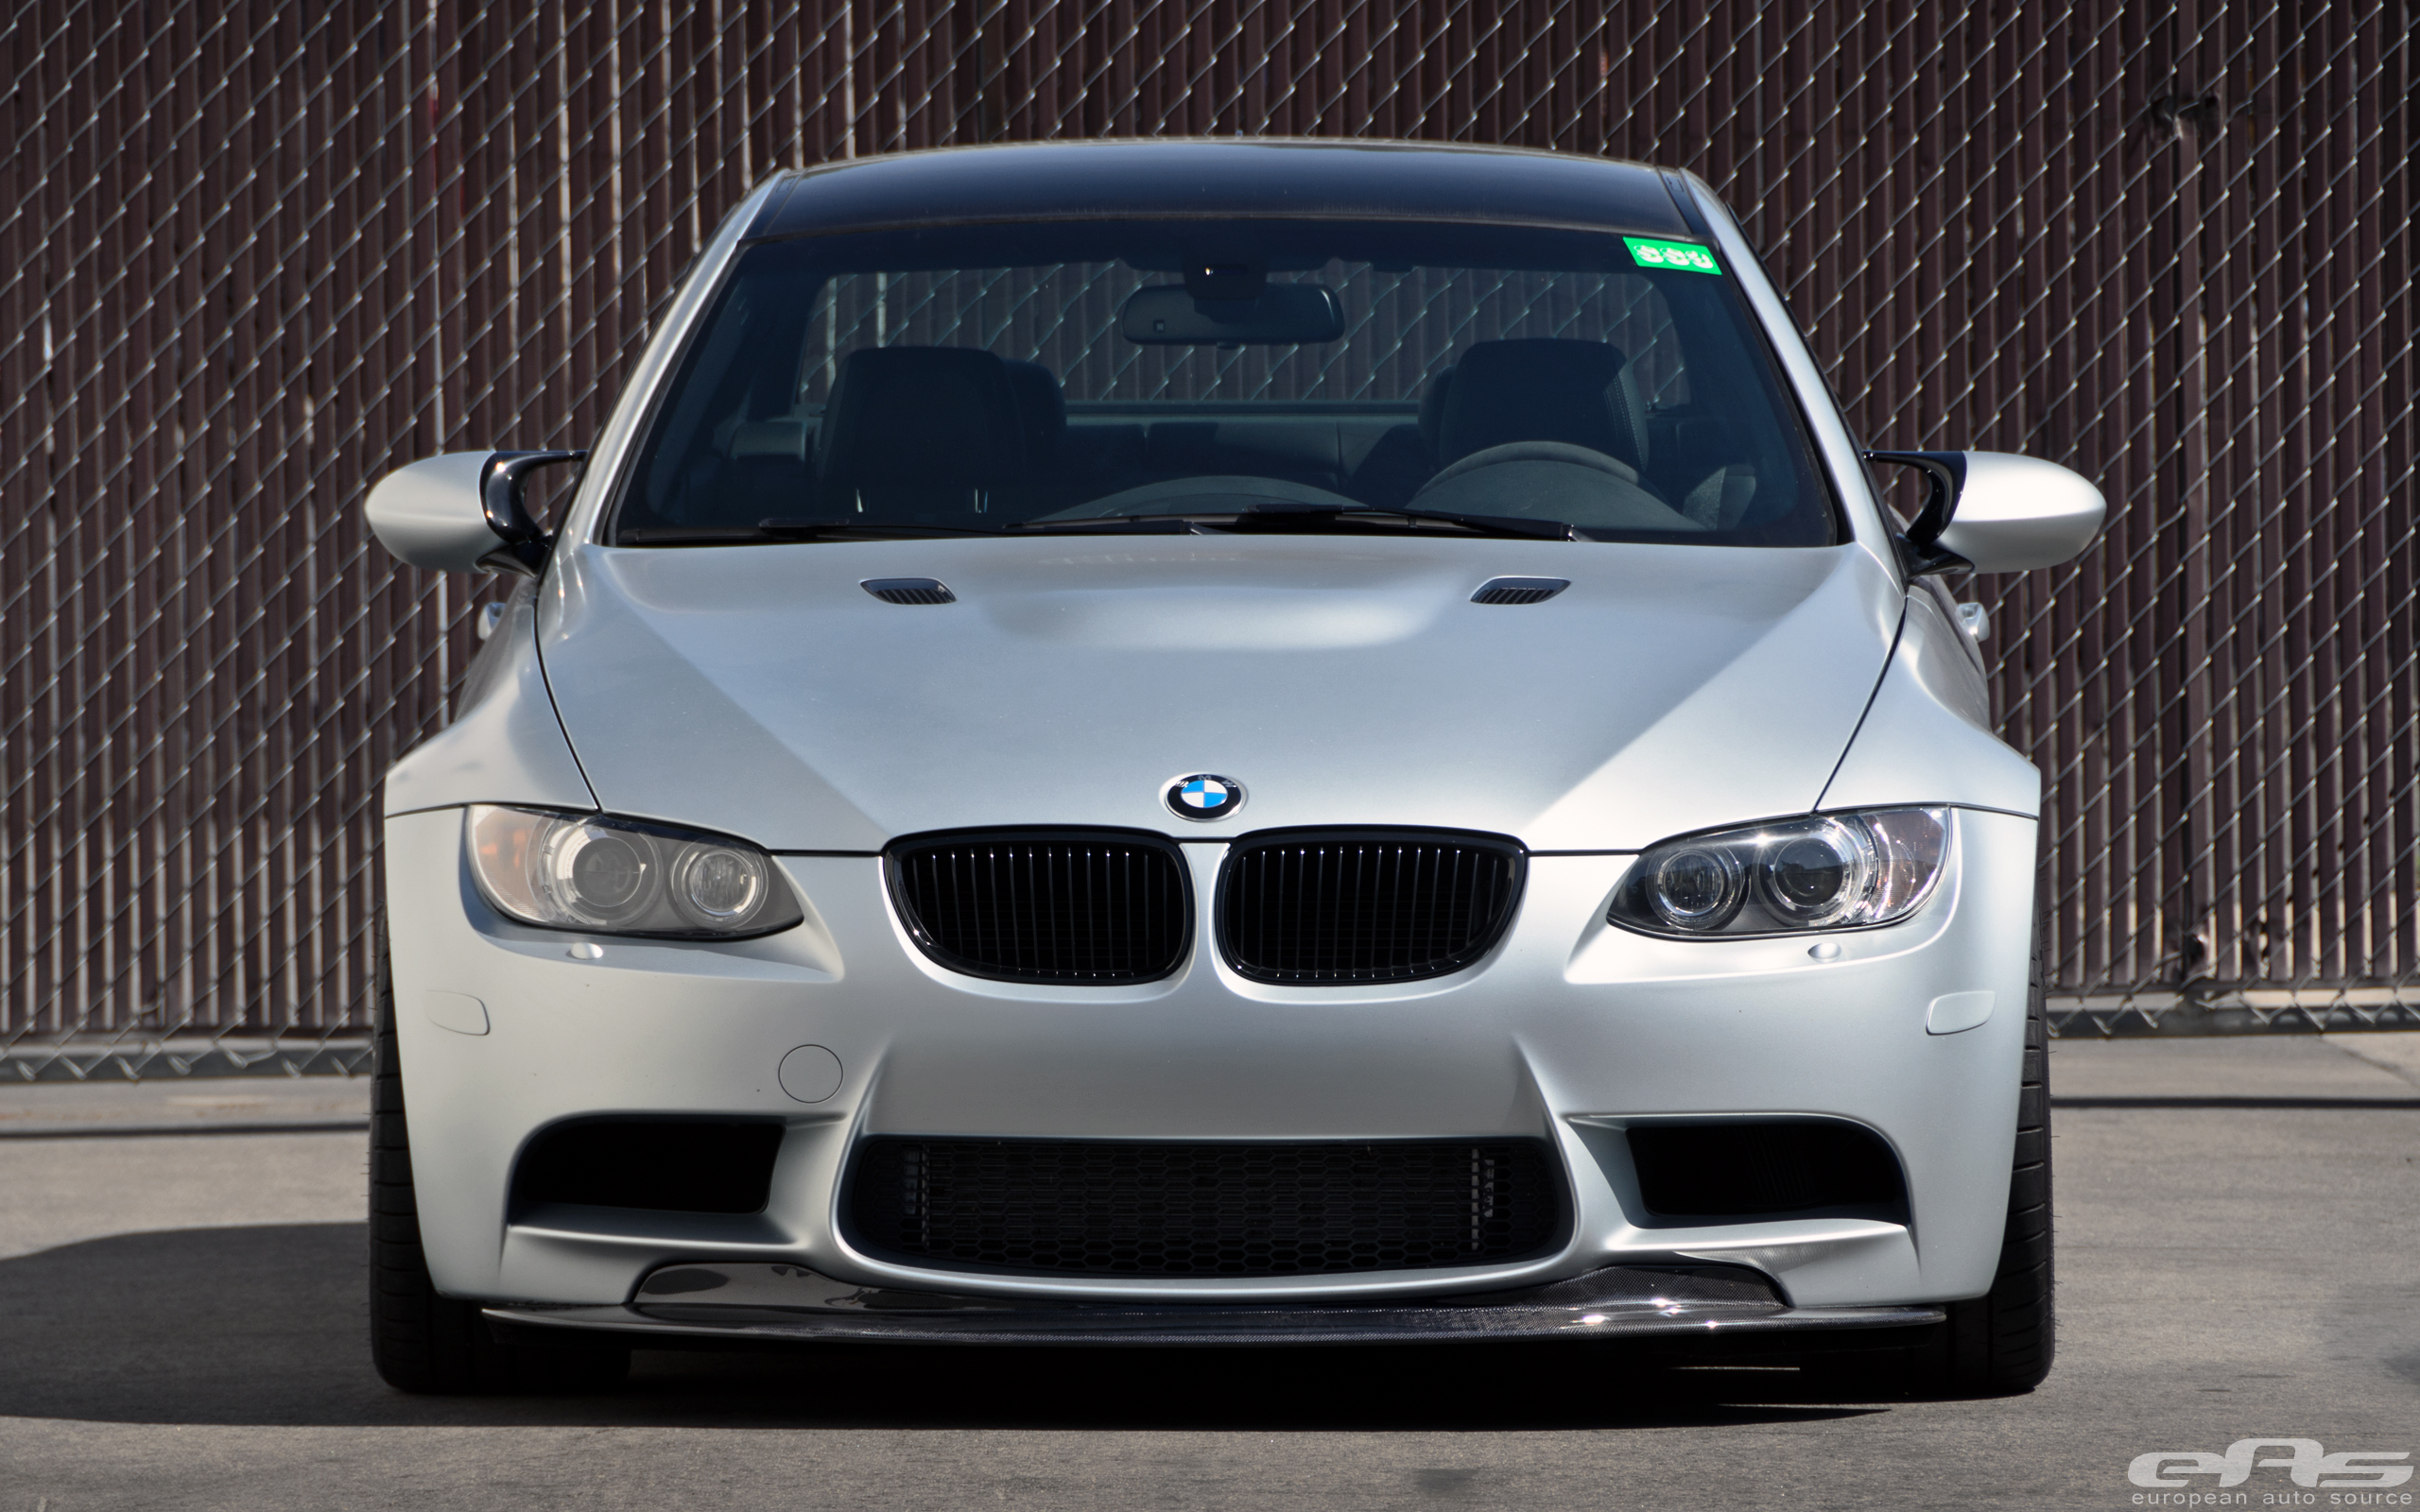 Mode Carbon Lip Amp Diffuser Installed On Frozen Silver M3